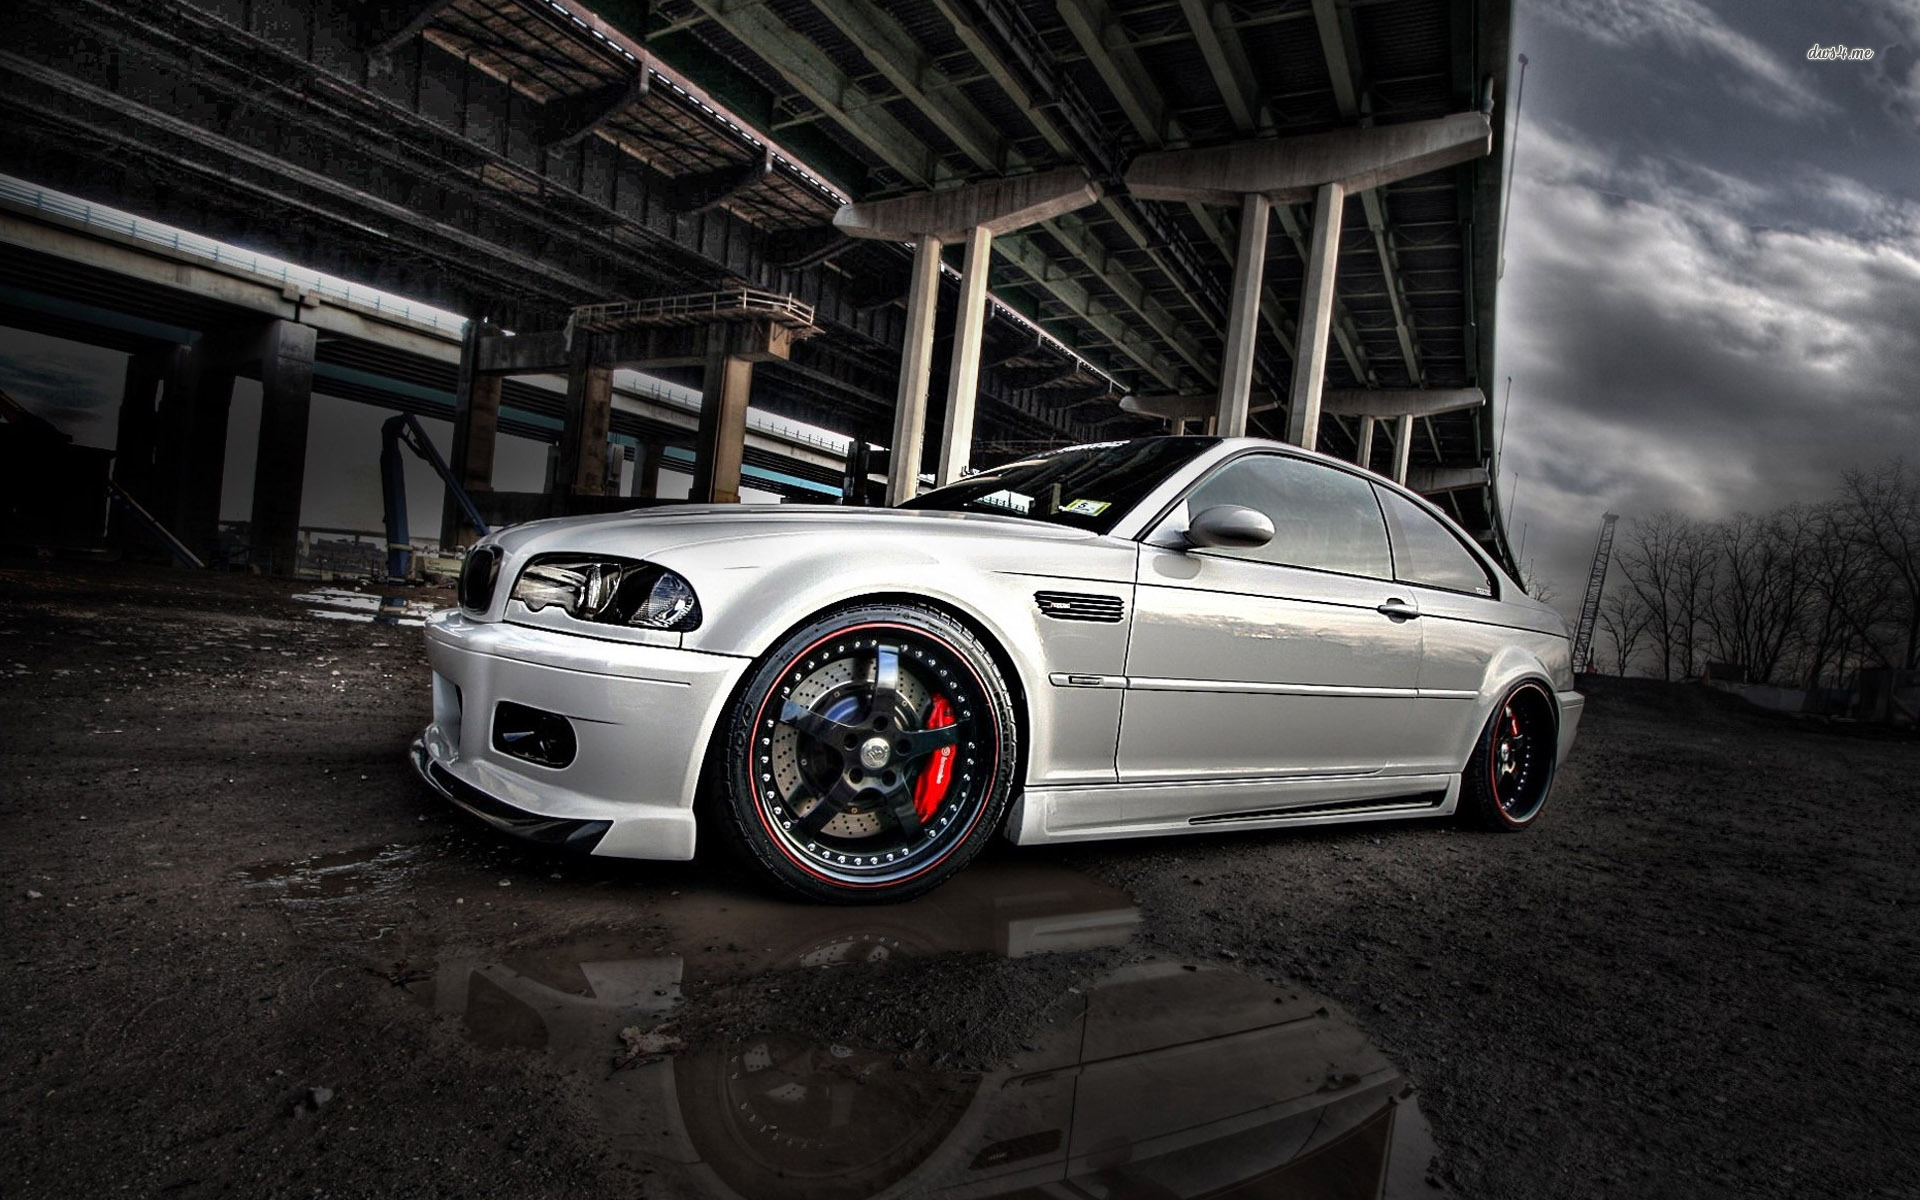 Bmw M3 Wallpaper Amazing BMW M3 Wallpapers Collection 39 1920x1200